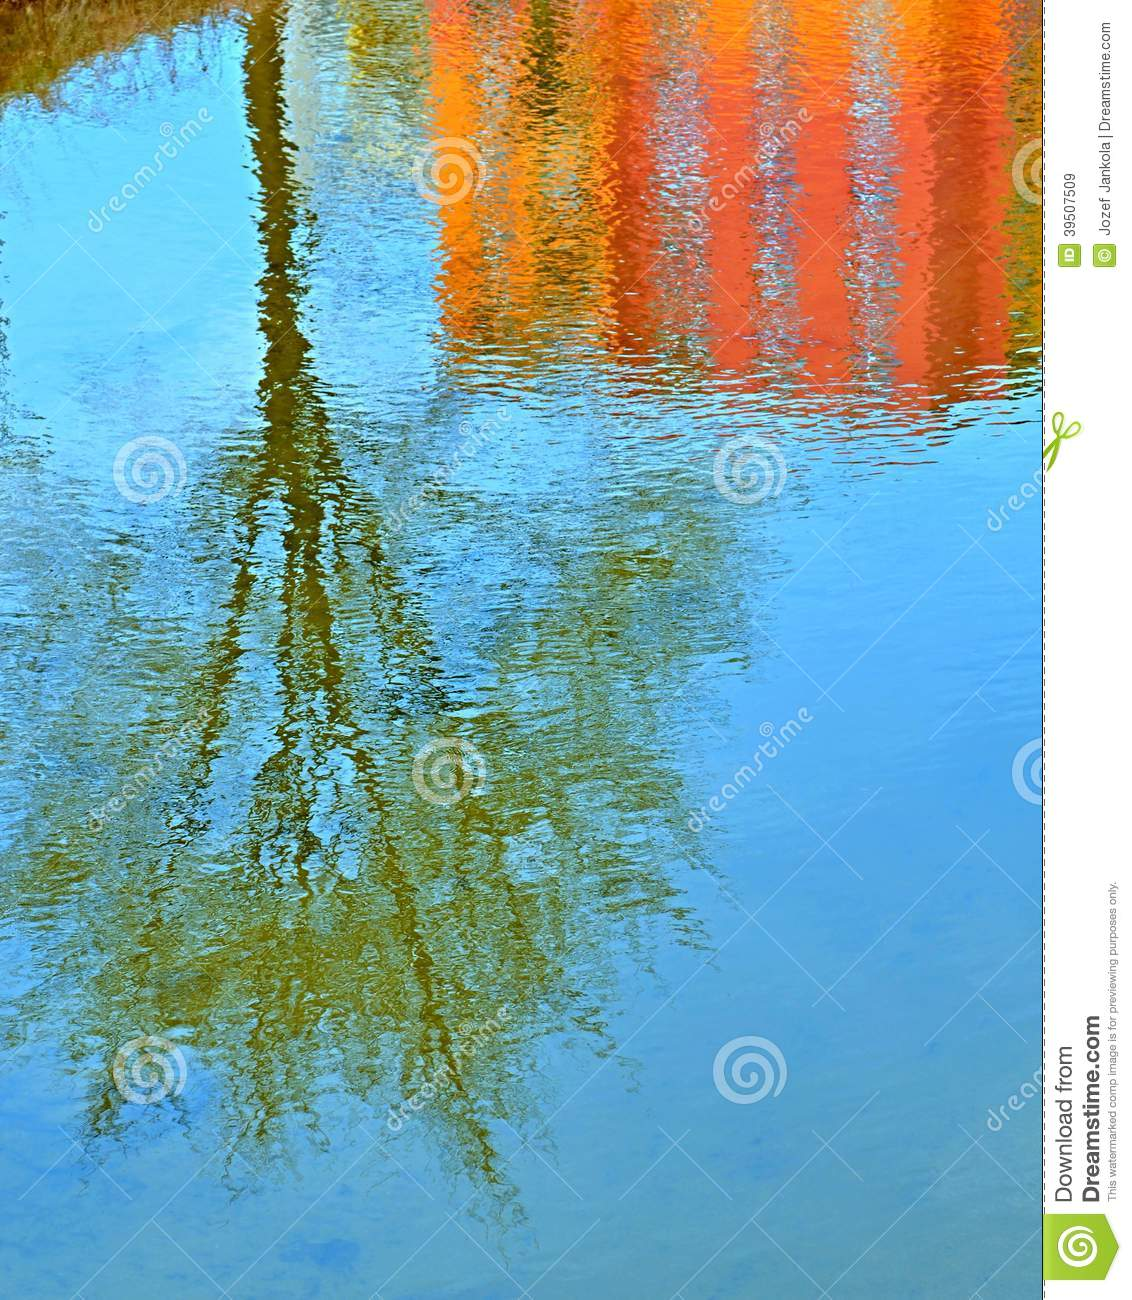 Mirrored trees and building in water